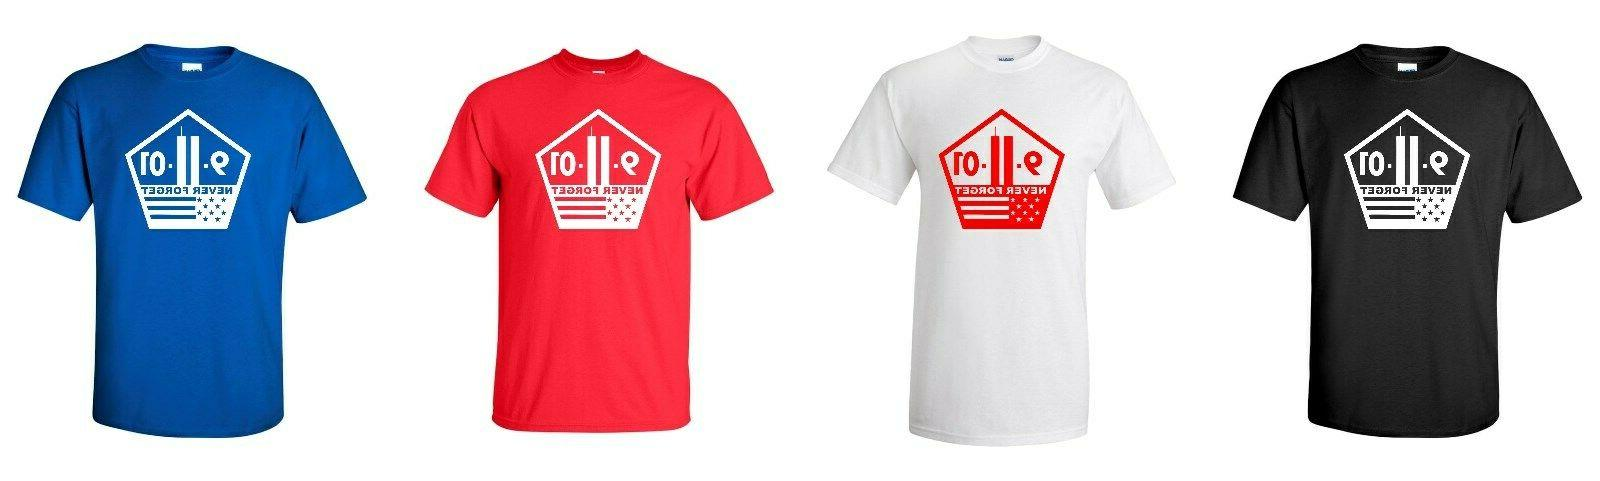 9/11 Memorial T Tee Mens and Youth Sizes Forget